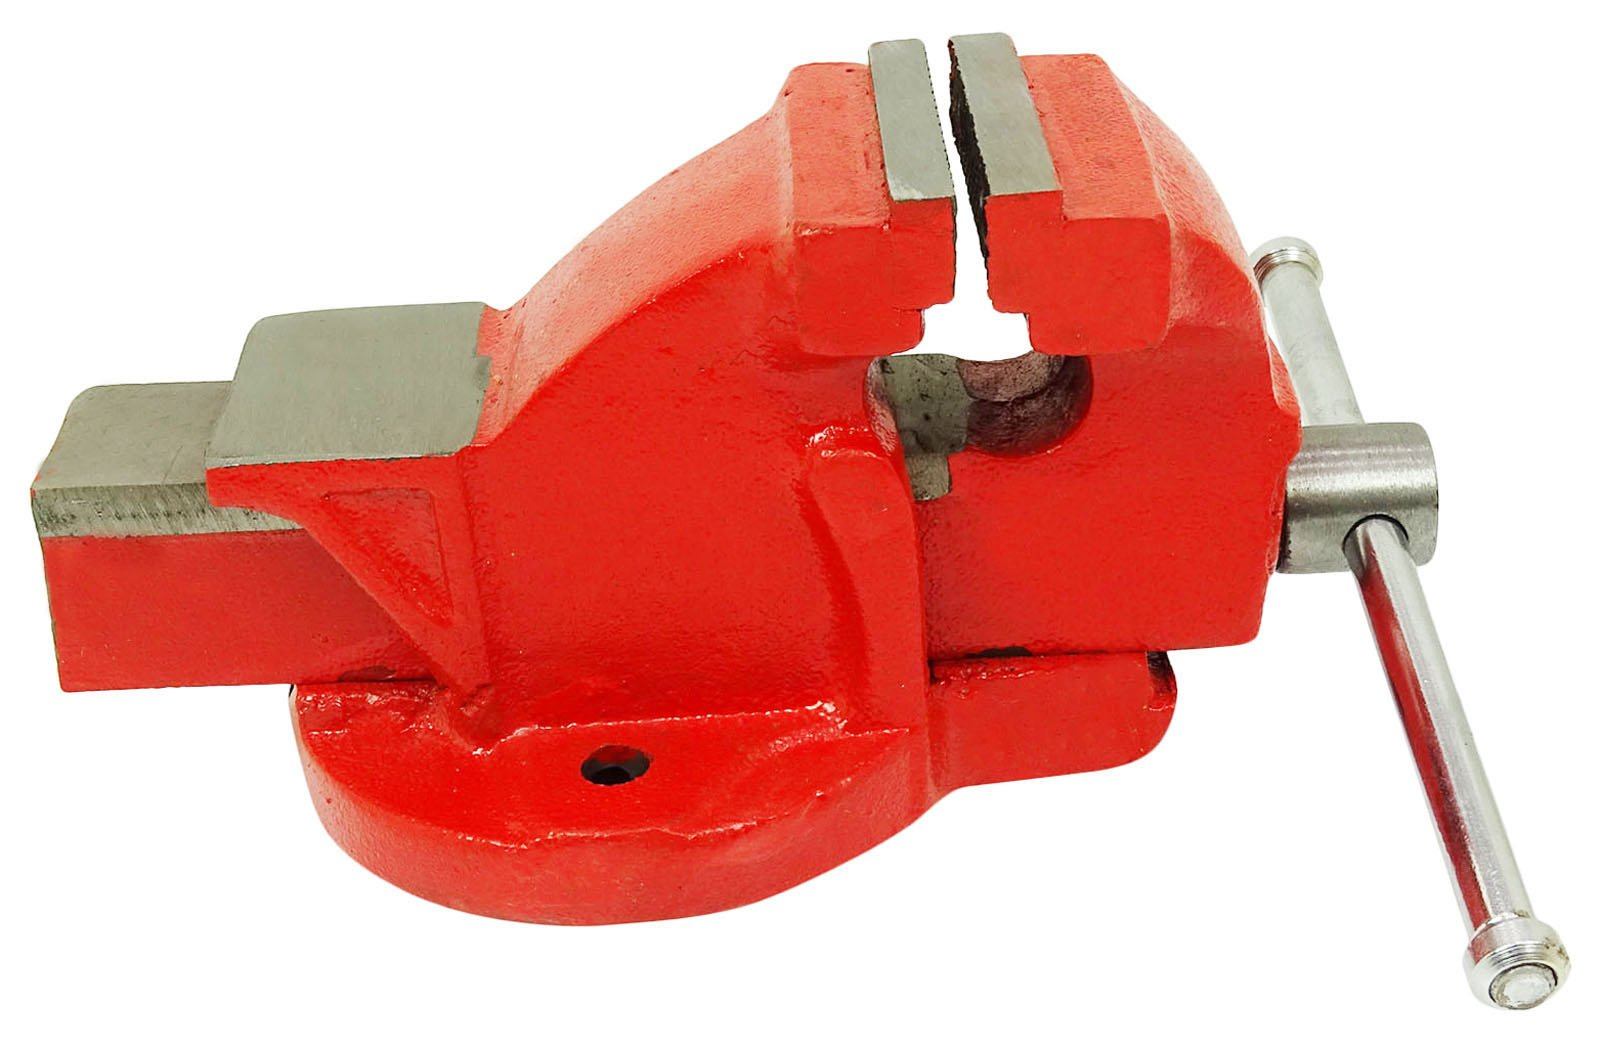 BAUM Heavy Duty Professional Bench Vice Fixed Tool - 5 Inch / 125 mm